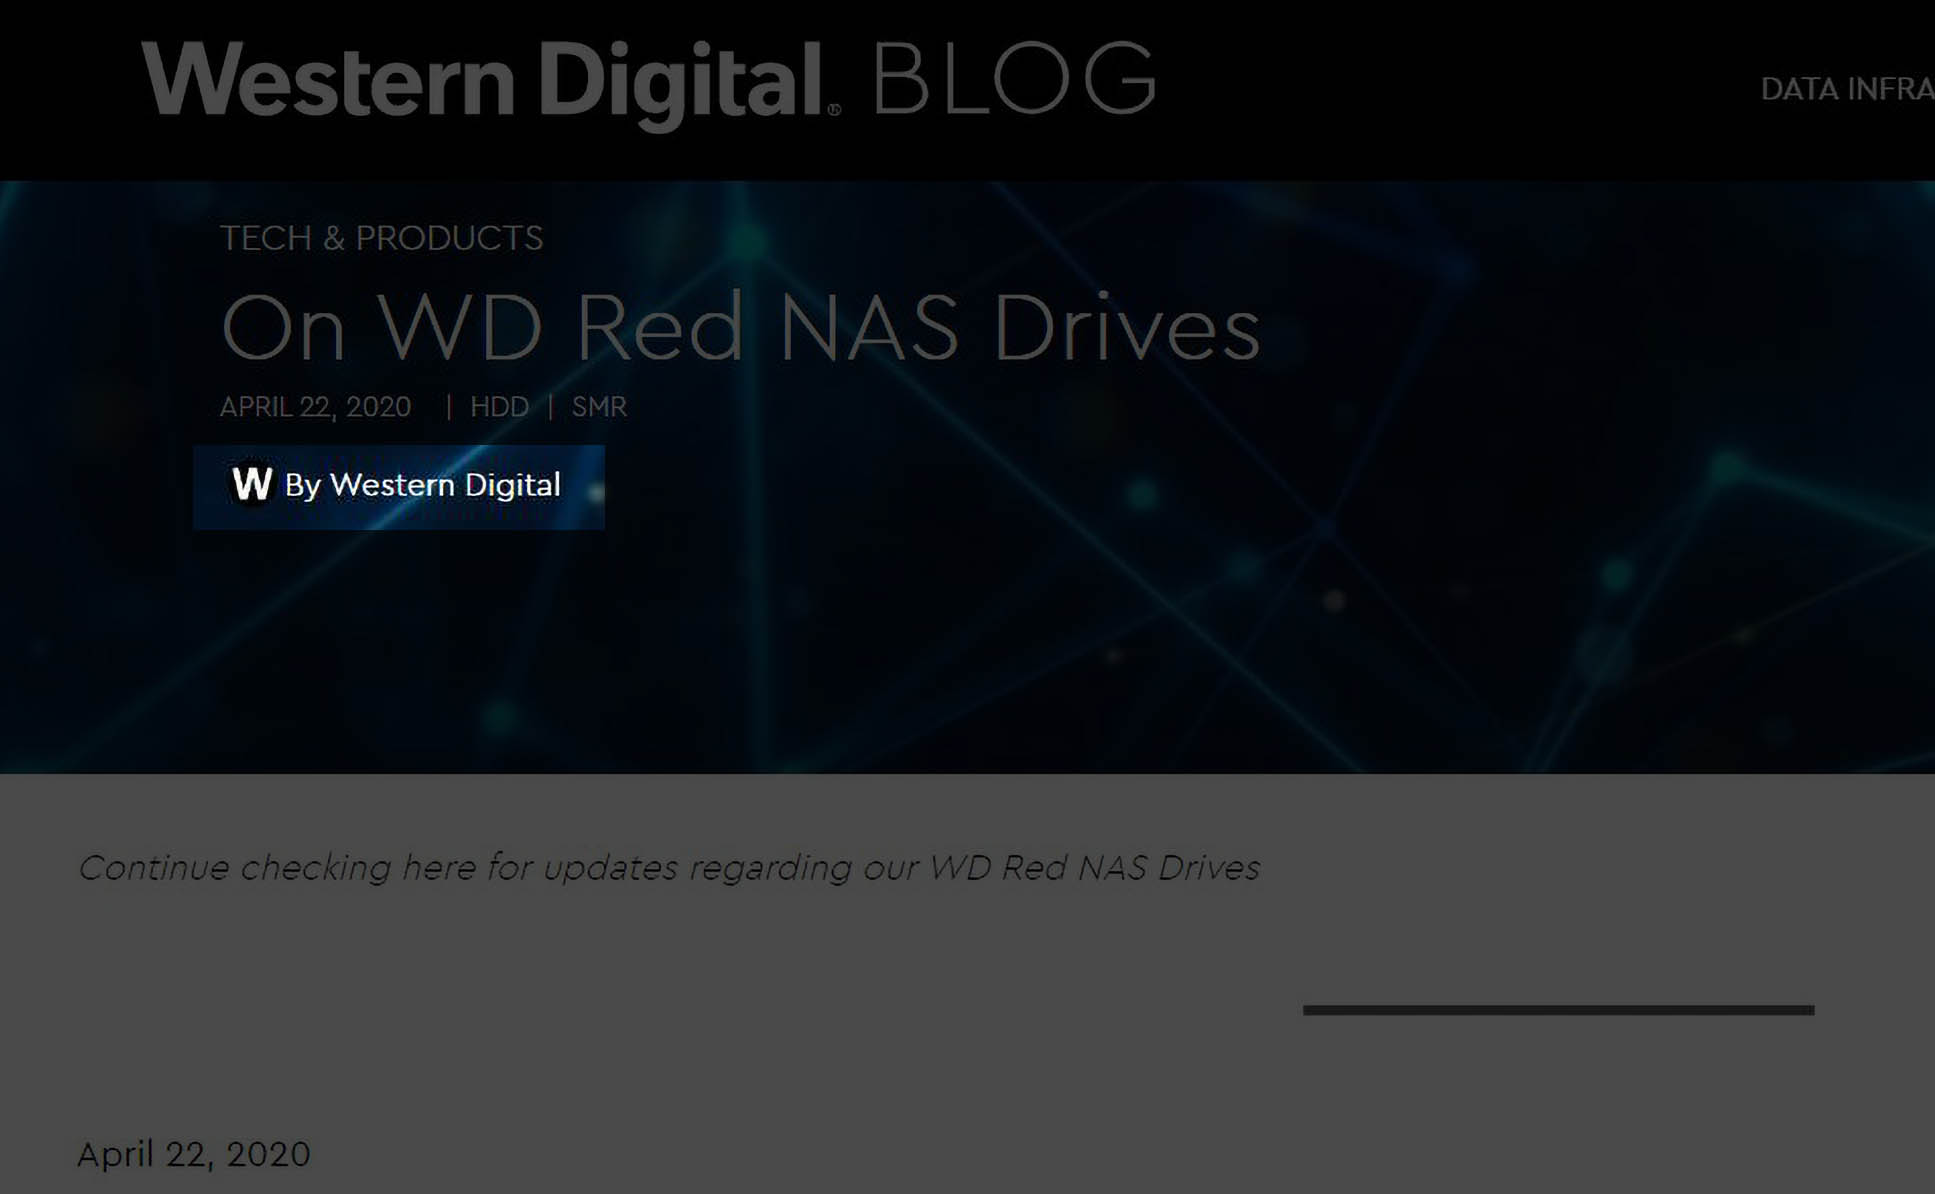 WD Segments 2020 04 22 On WD Red NAS Drives By Western Digital